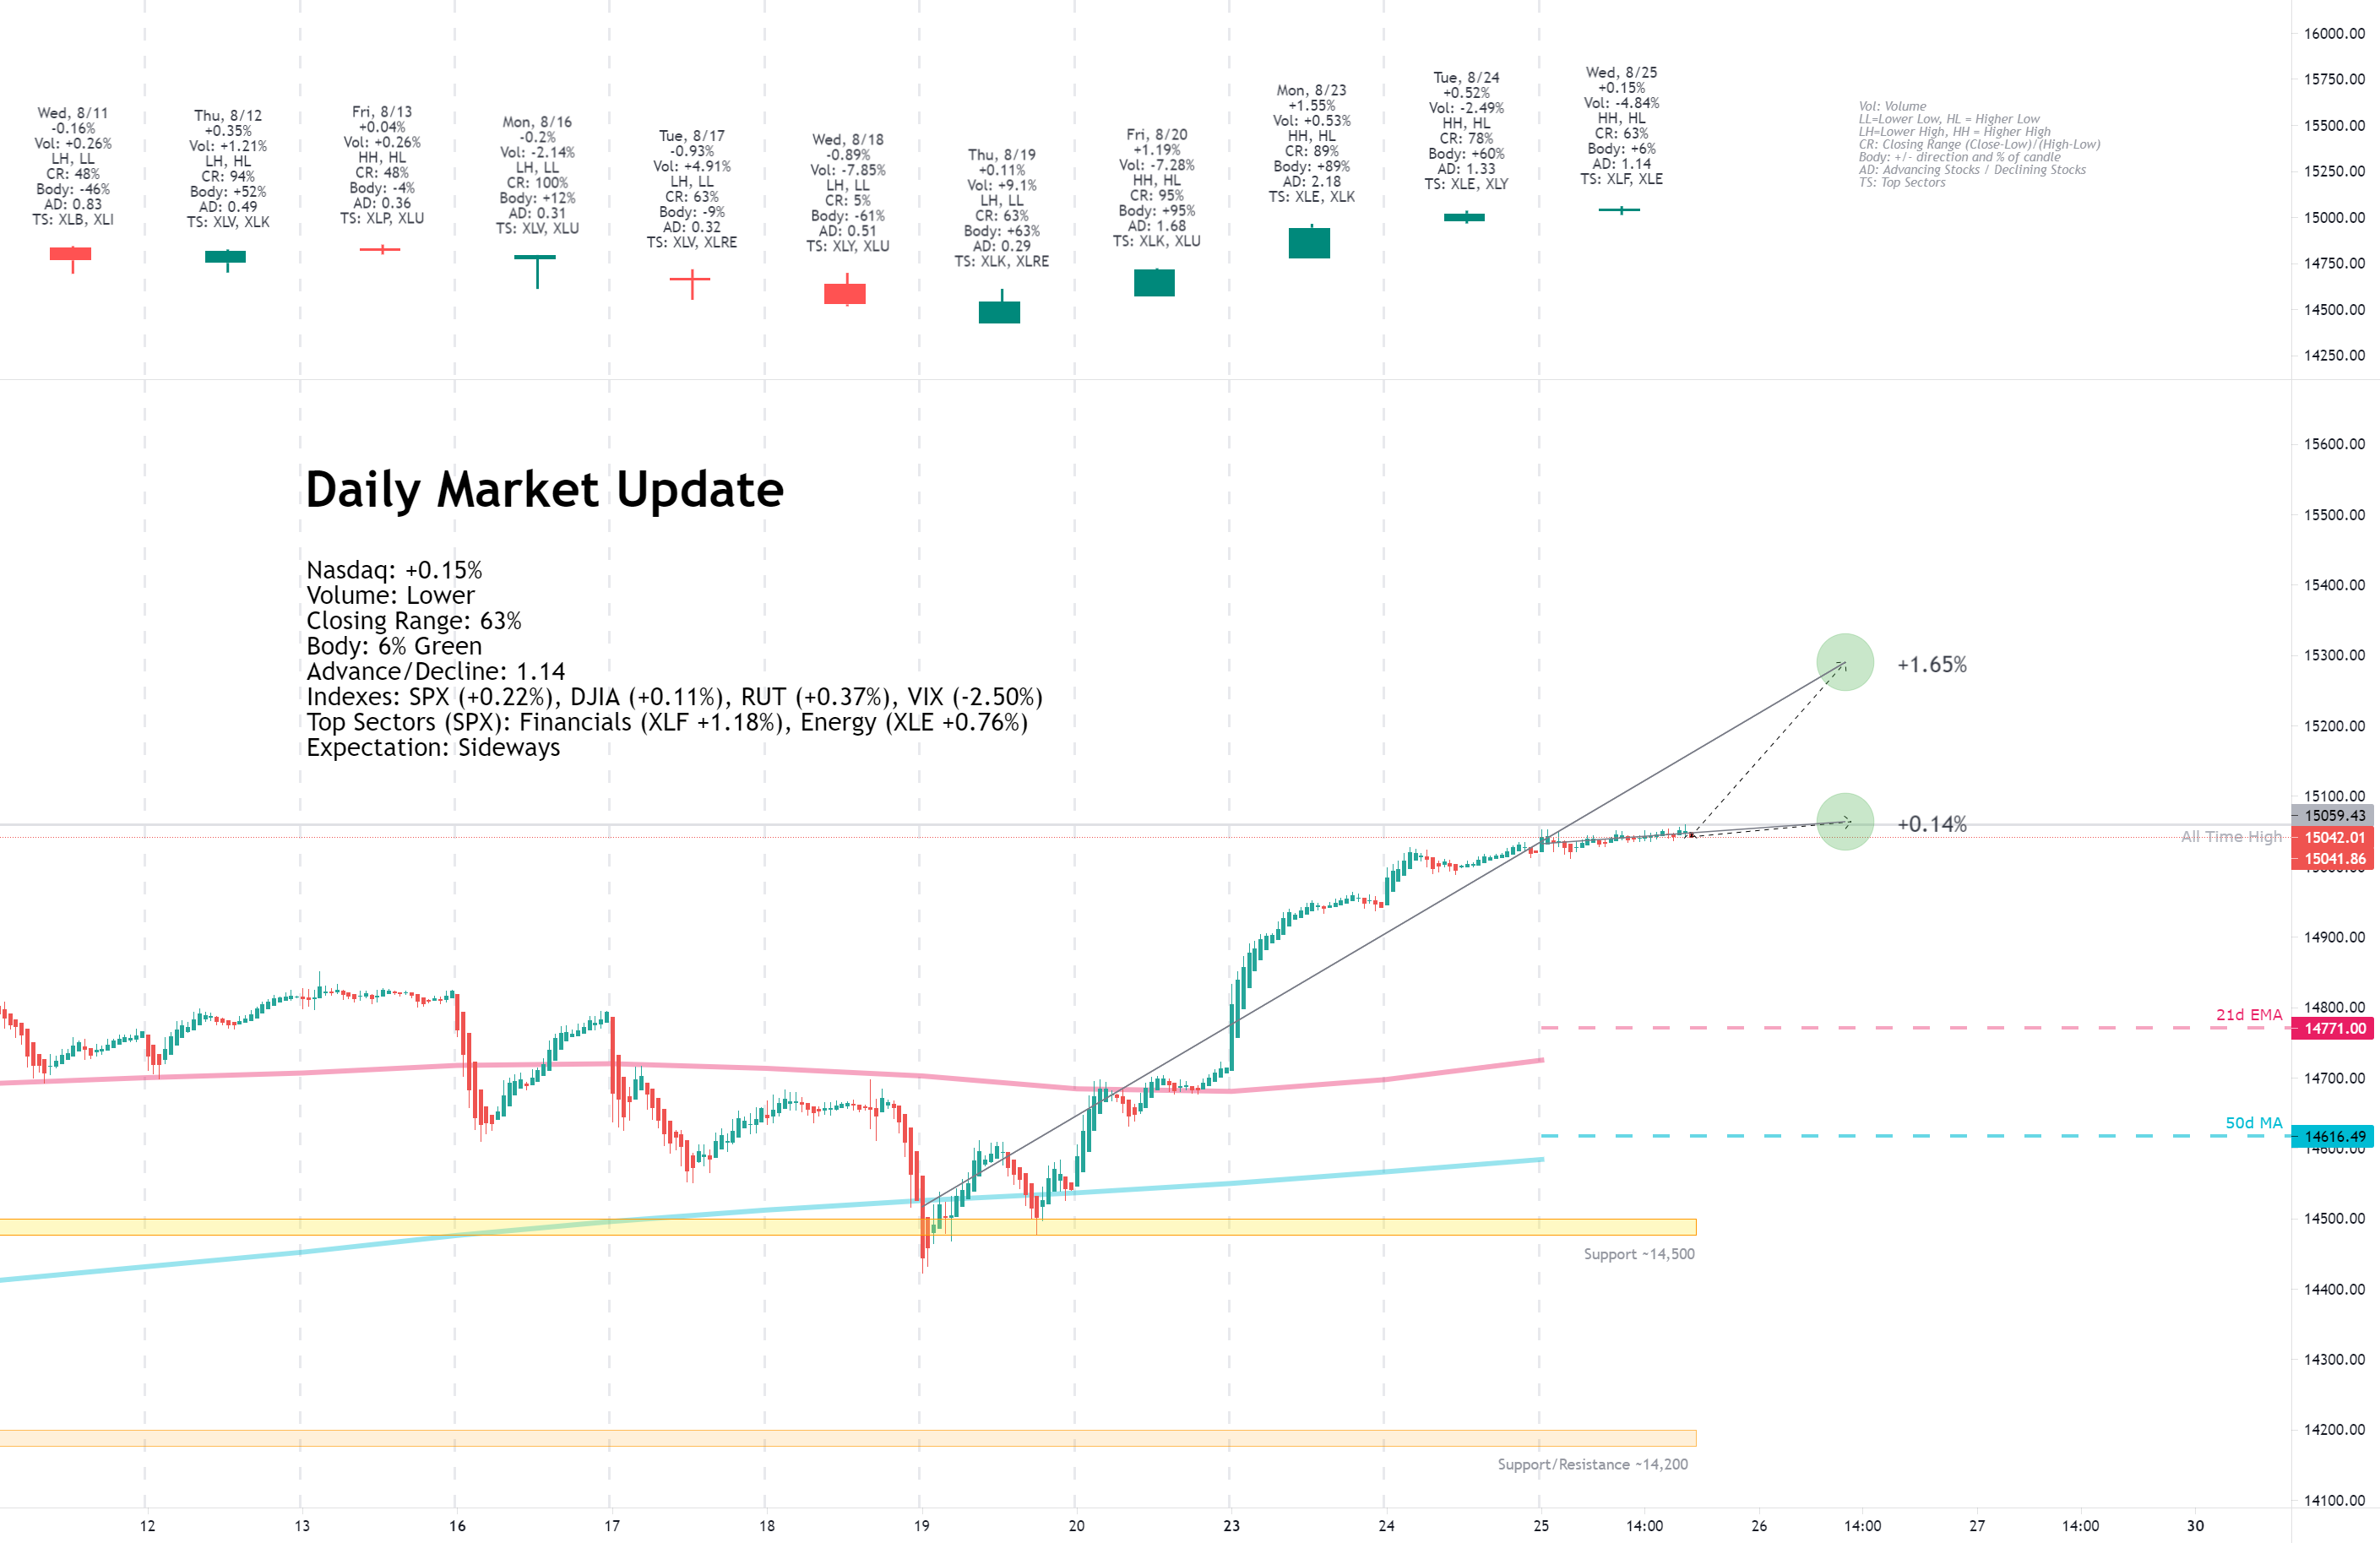 Daily Market Update for 8/25